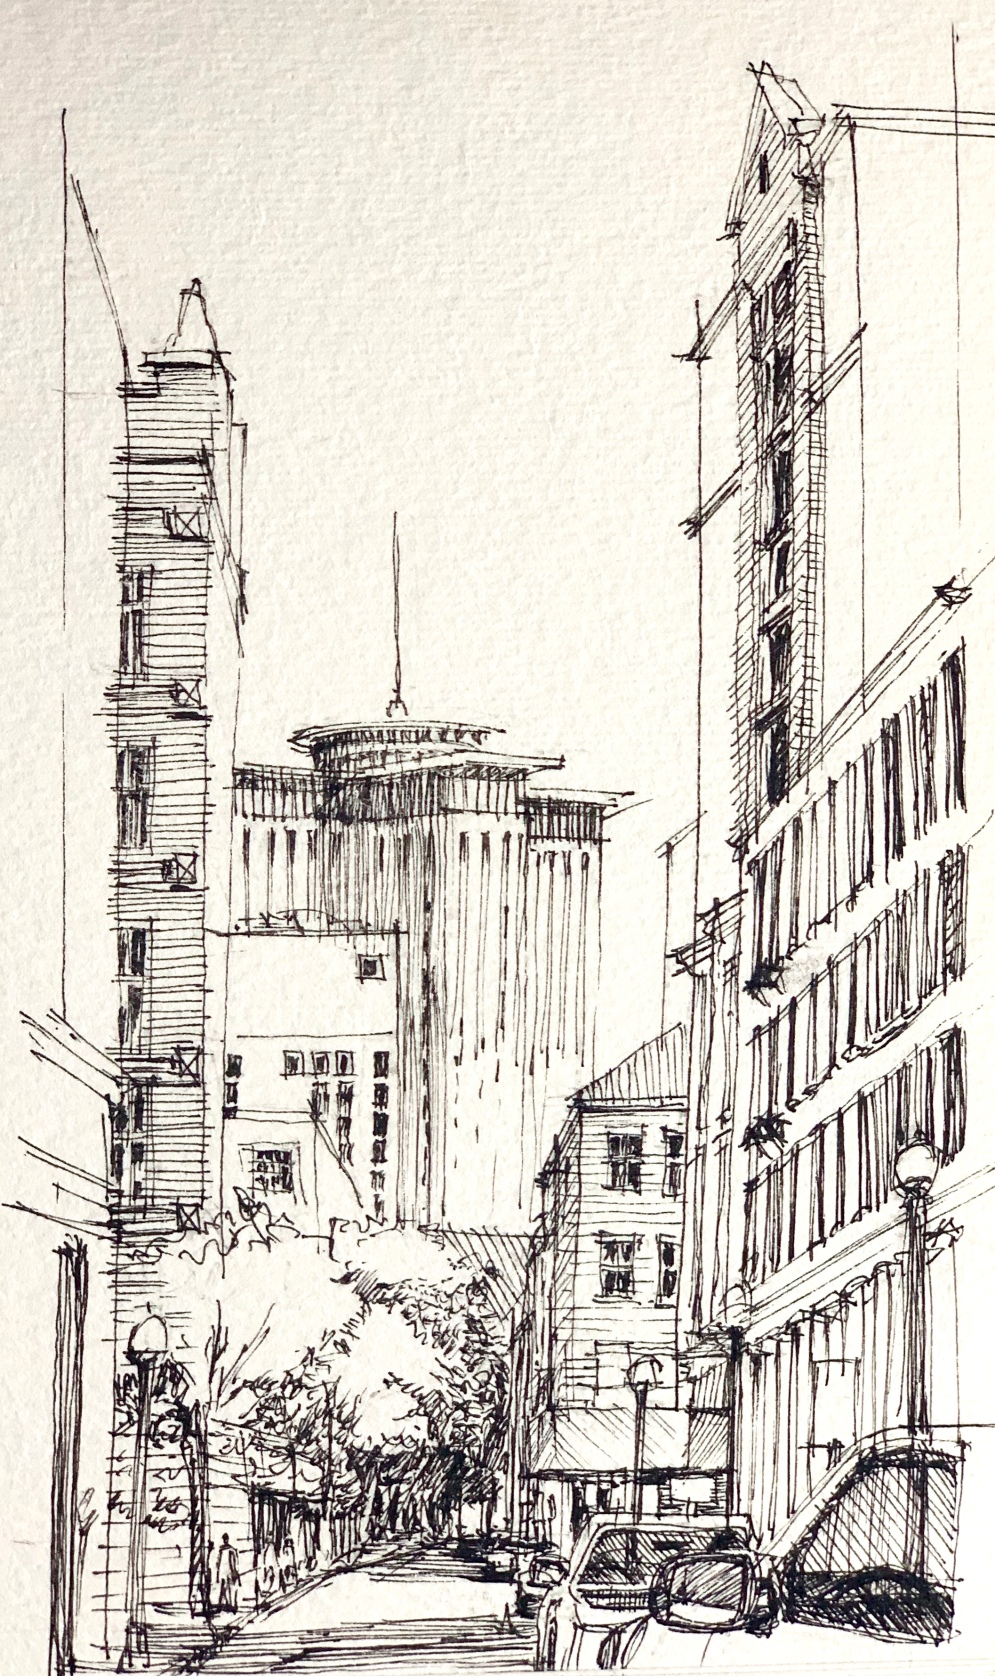 nola dowtown sketch